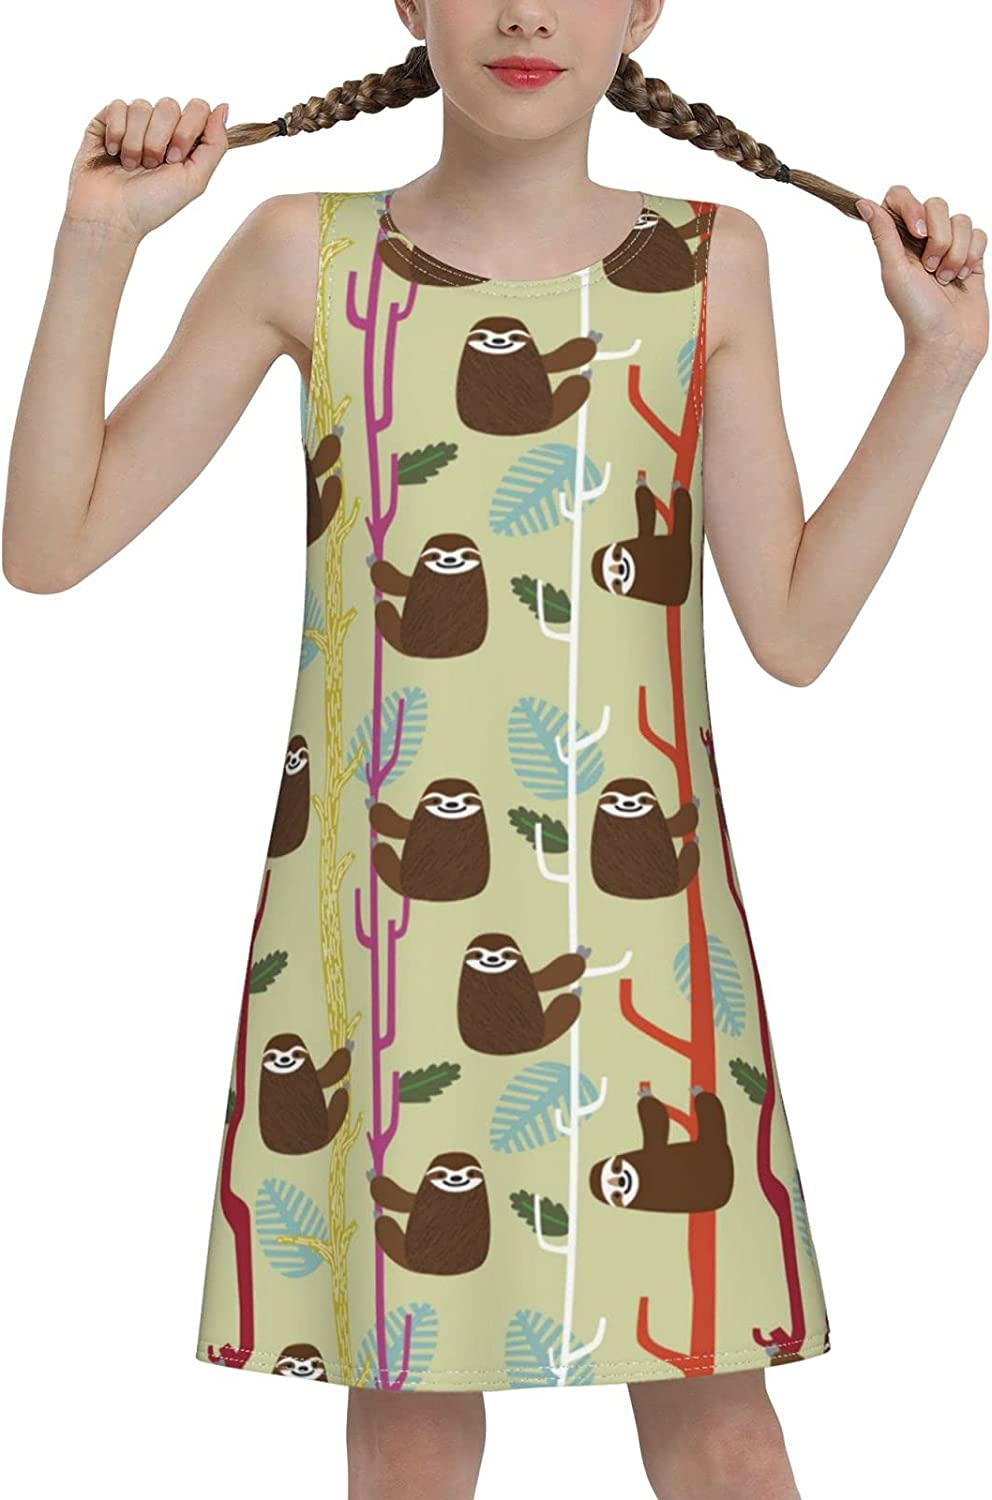 YhrYUGFgf Sloth Tree Sleeveless Dress for Girls Casual Printed A-Line Jumper Skirt